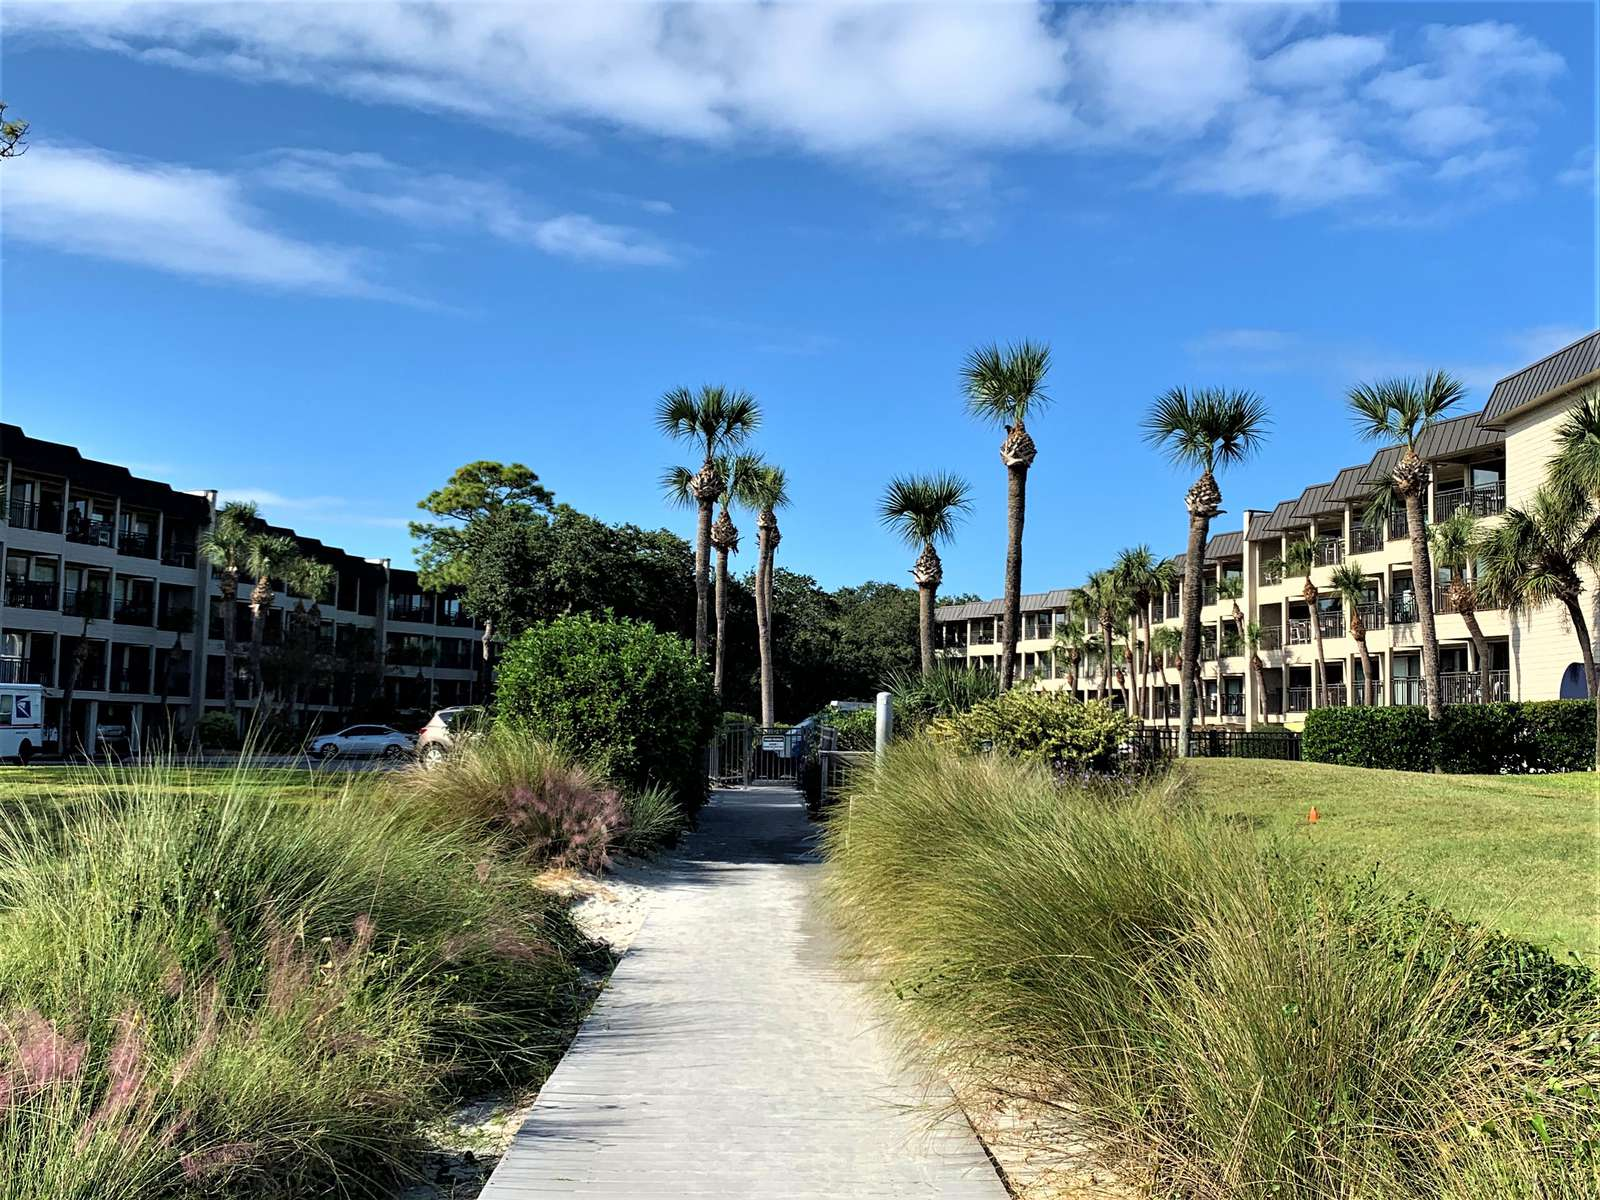 Landscaped Grounds and only 2 Buildings at Seaside Villas